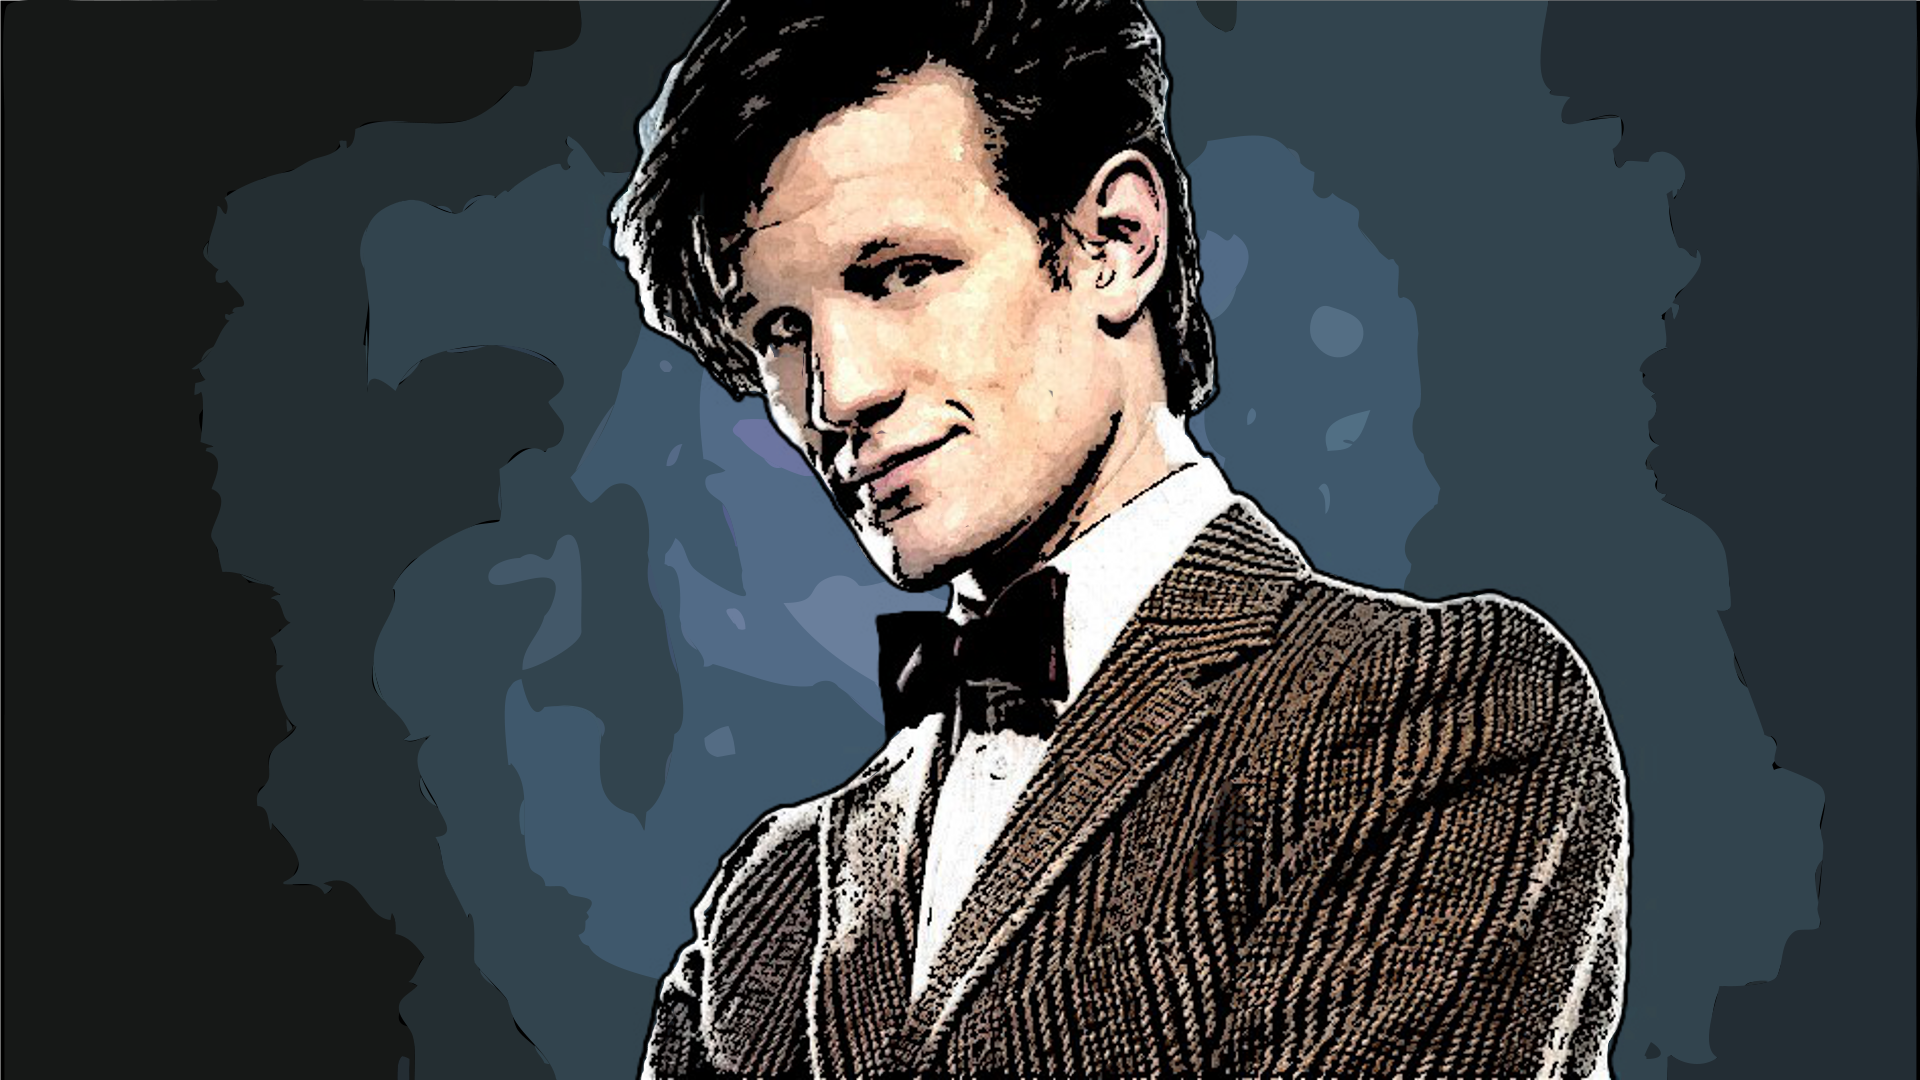 Matt Smith Wallpapers Images Photos Pictures Backgrounds 1920x1080